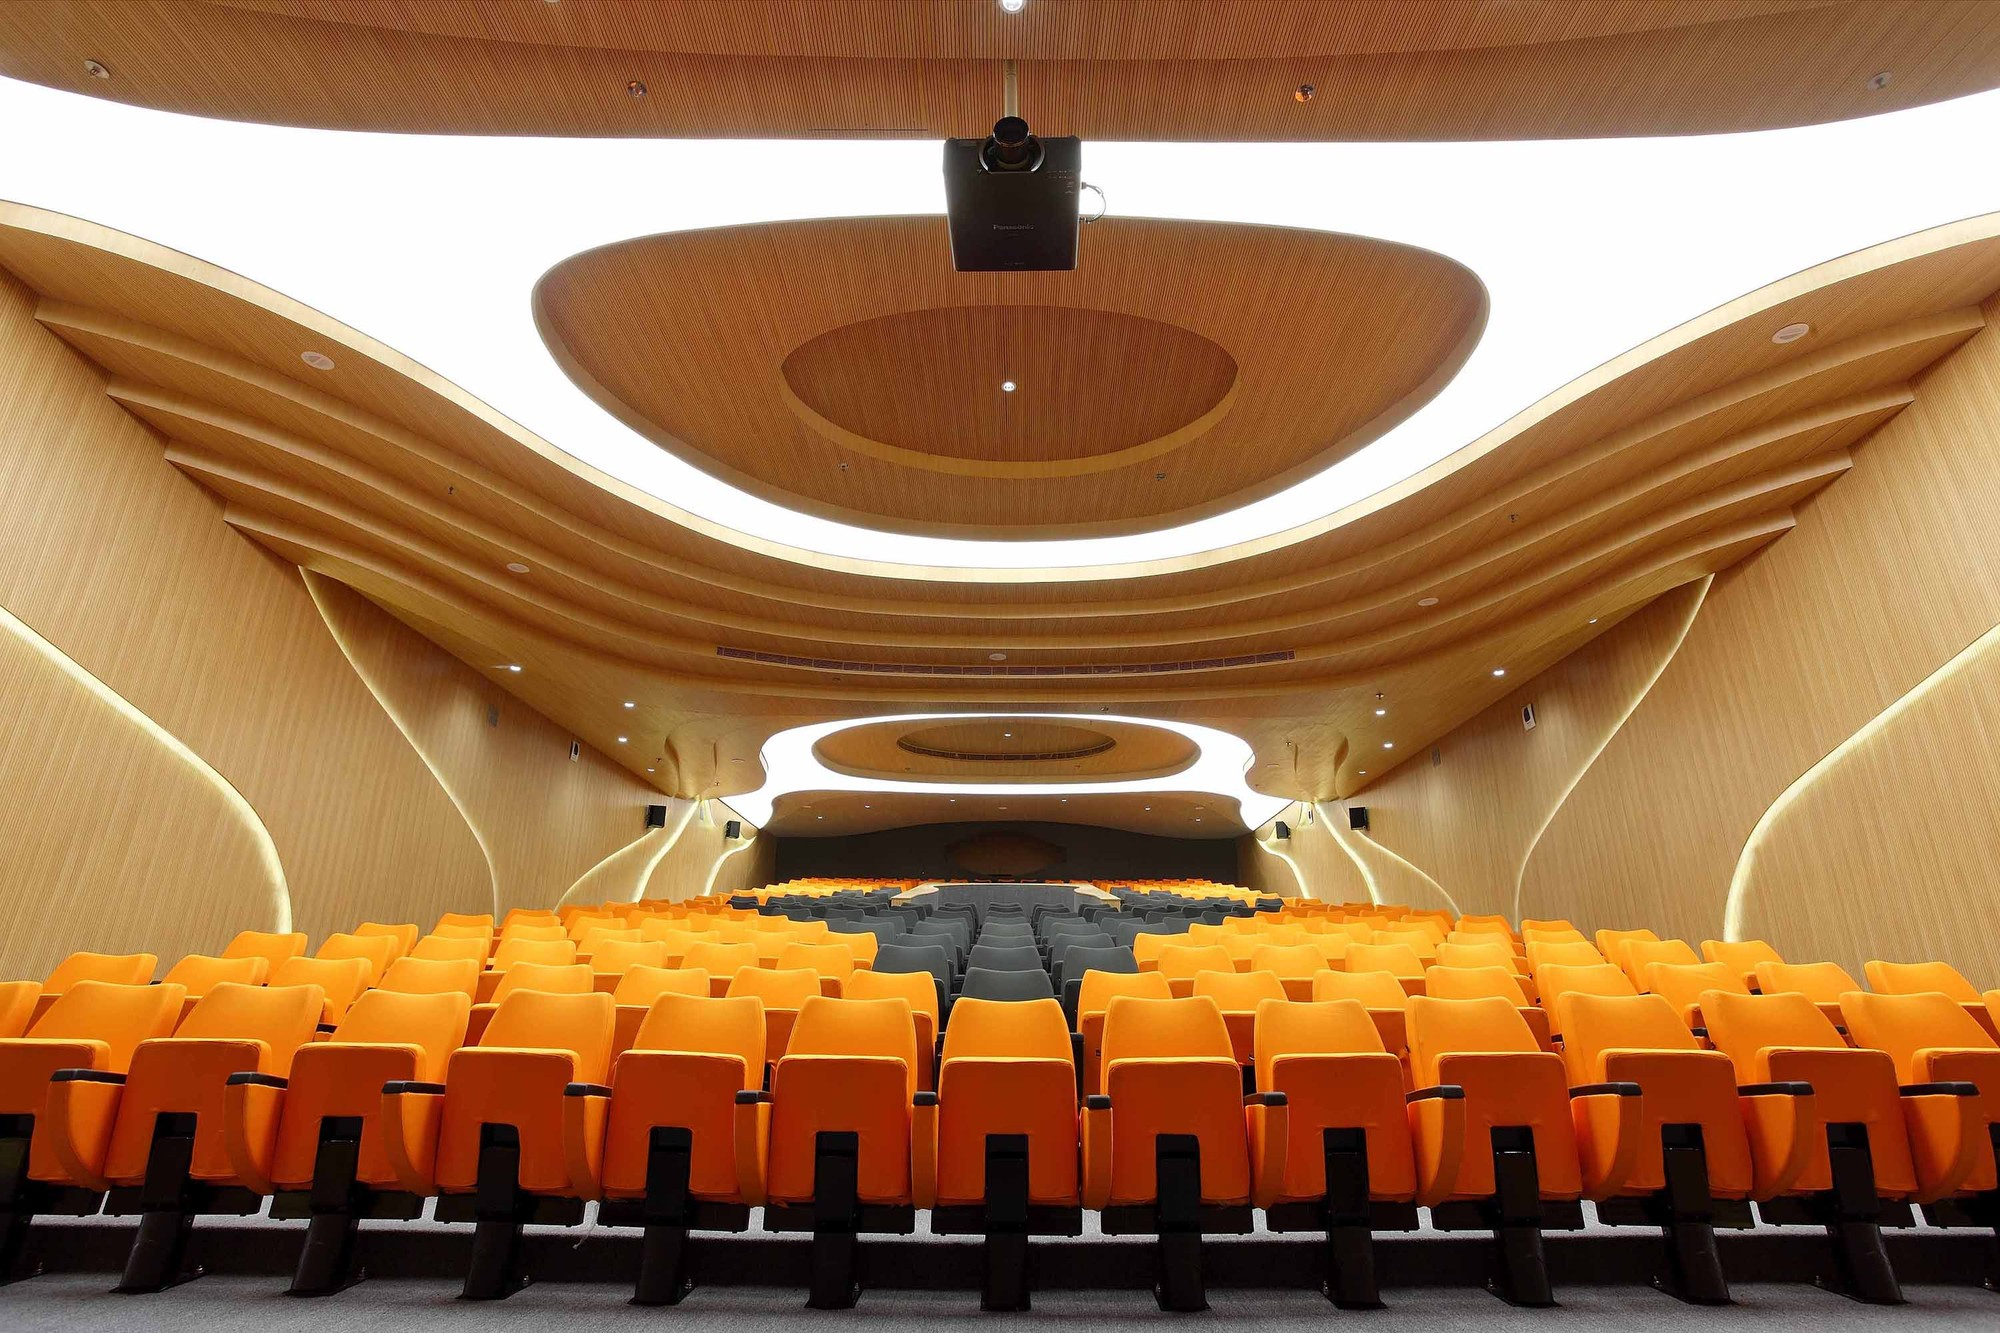 M auditorium planet 3 studios architecture archdaily for Architecture and design